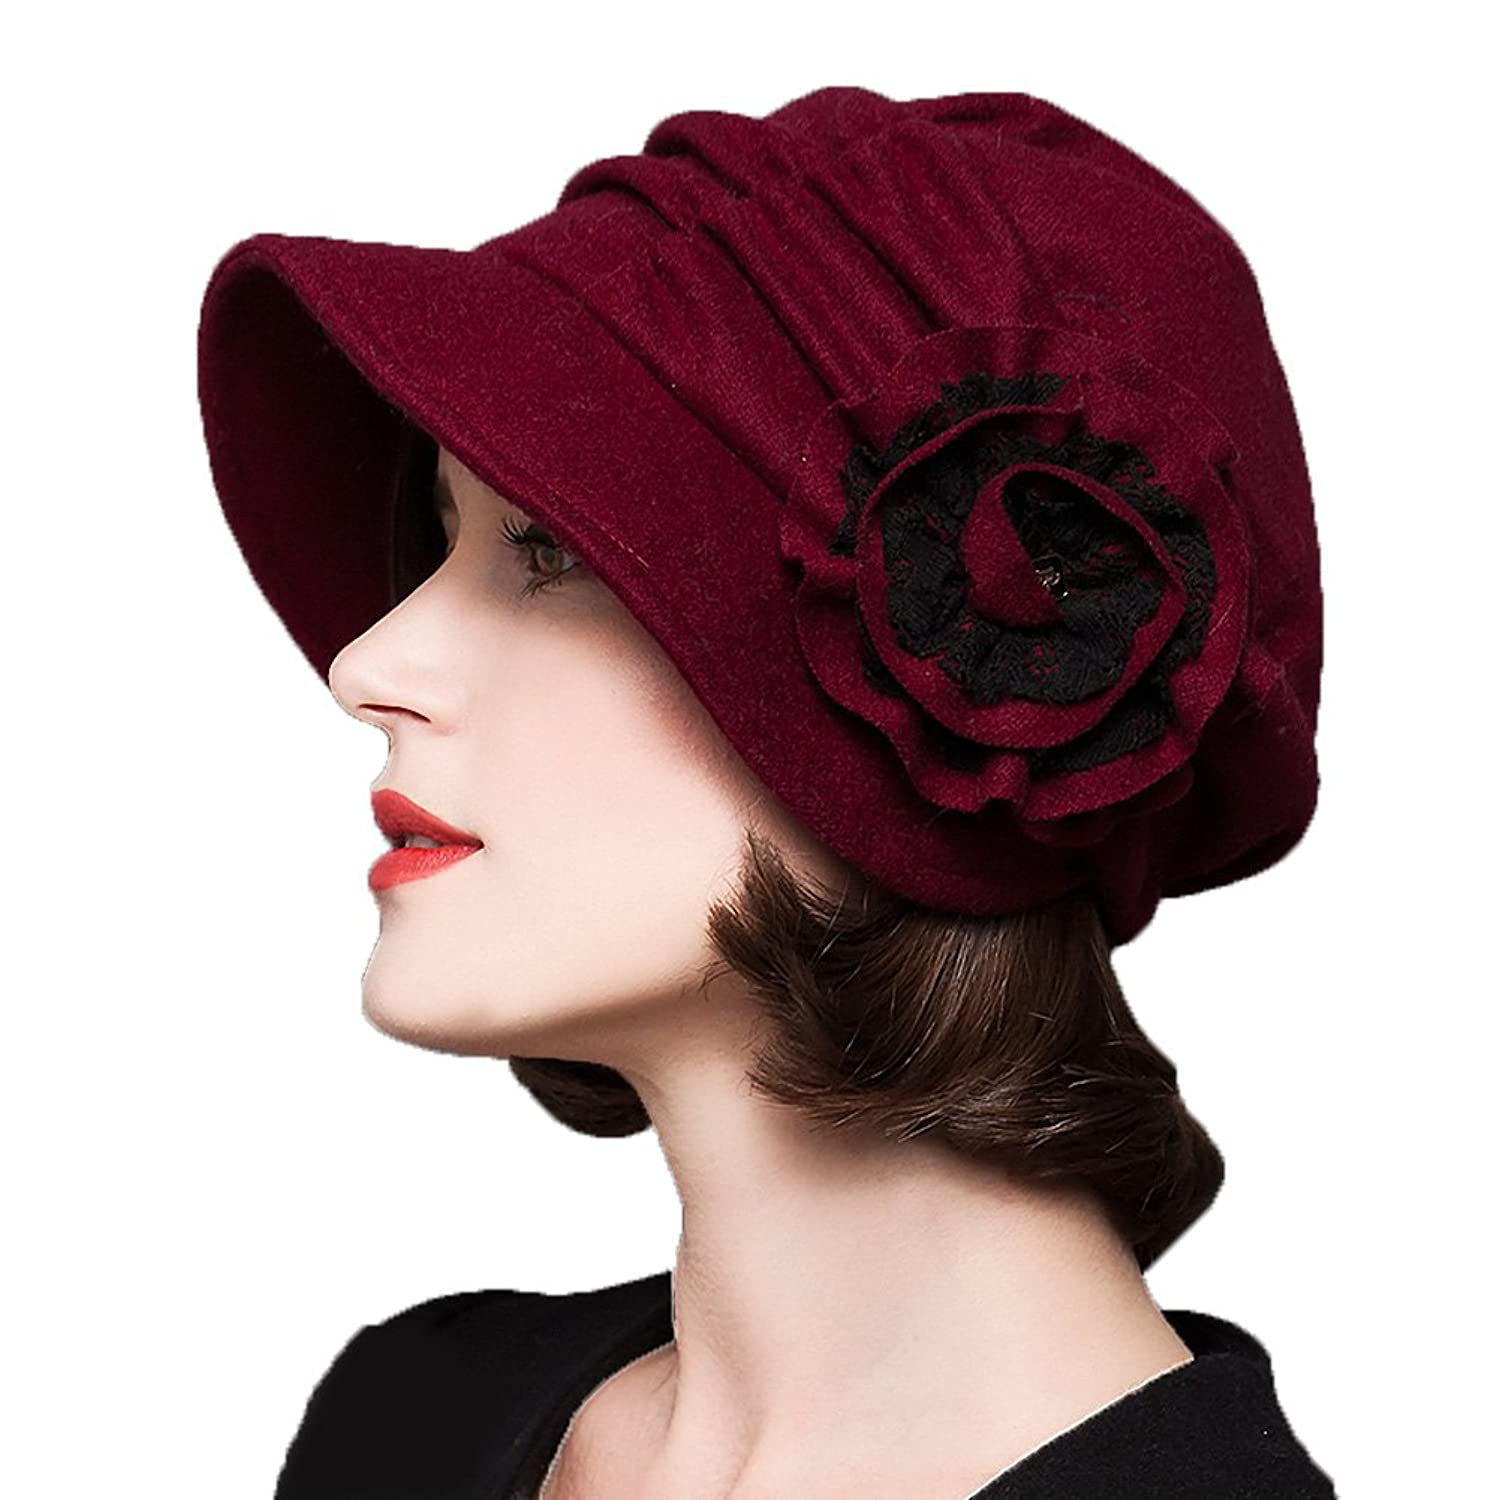 Roaring 20s Costumes- Flapper Costumes, Gangster Costumes  Decorative Flowers Wool Beret $28.40 AT vintagedancer.com